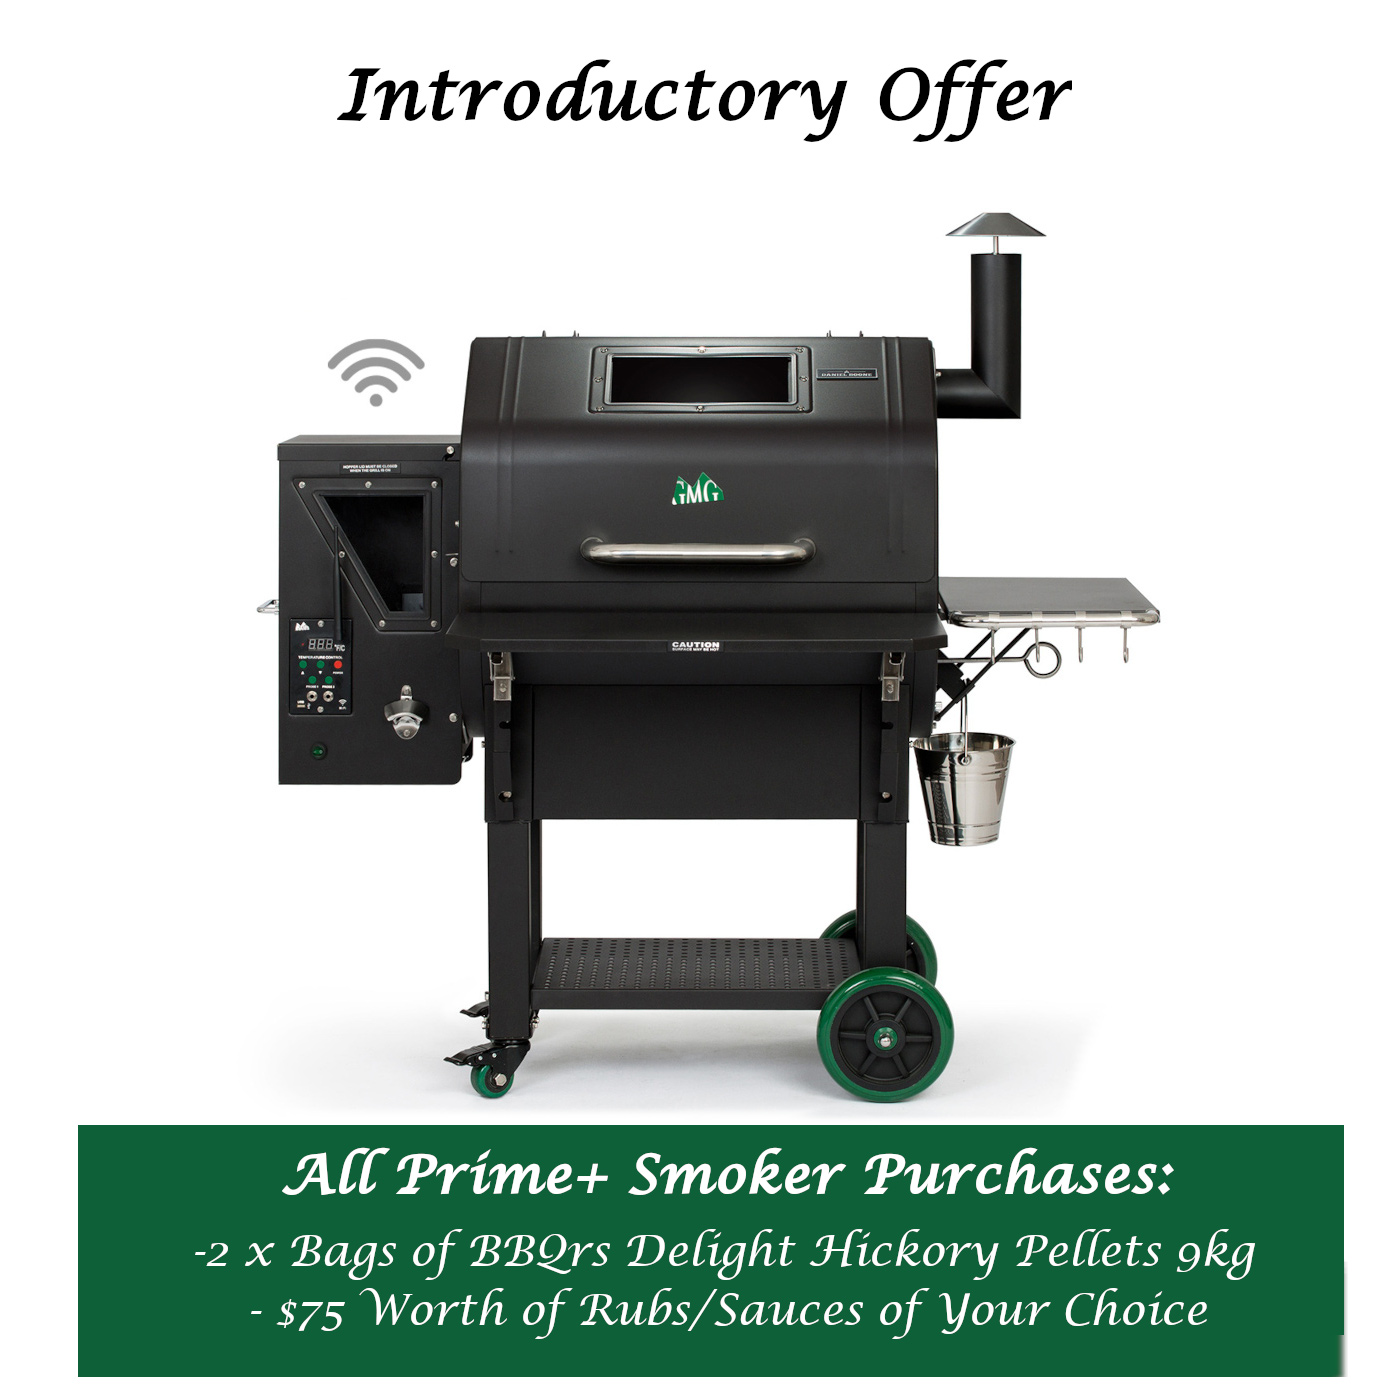 Green Mountain Grills Prime Plus Smoker - $75 Worth of Rubs/Sauces of Your Choice